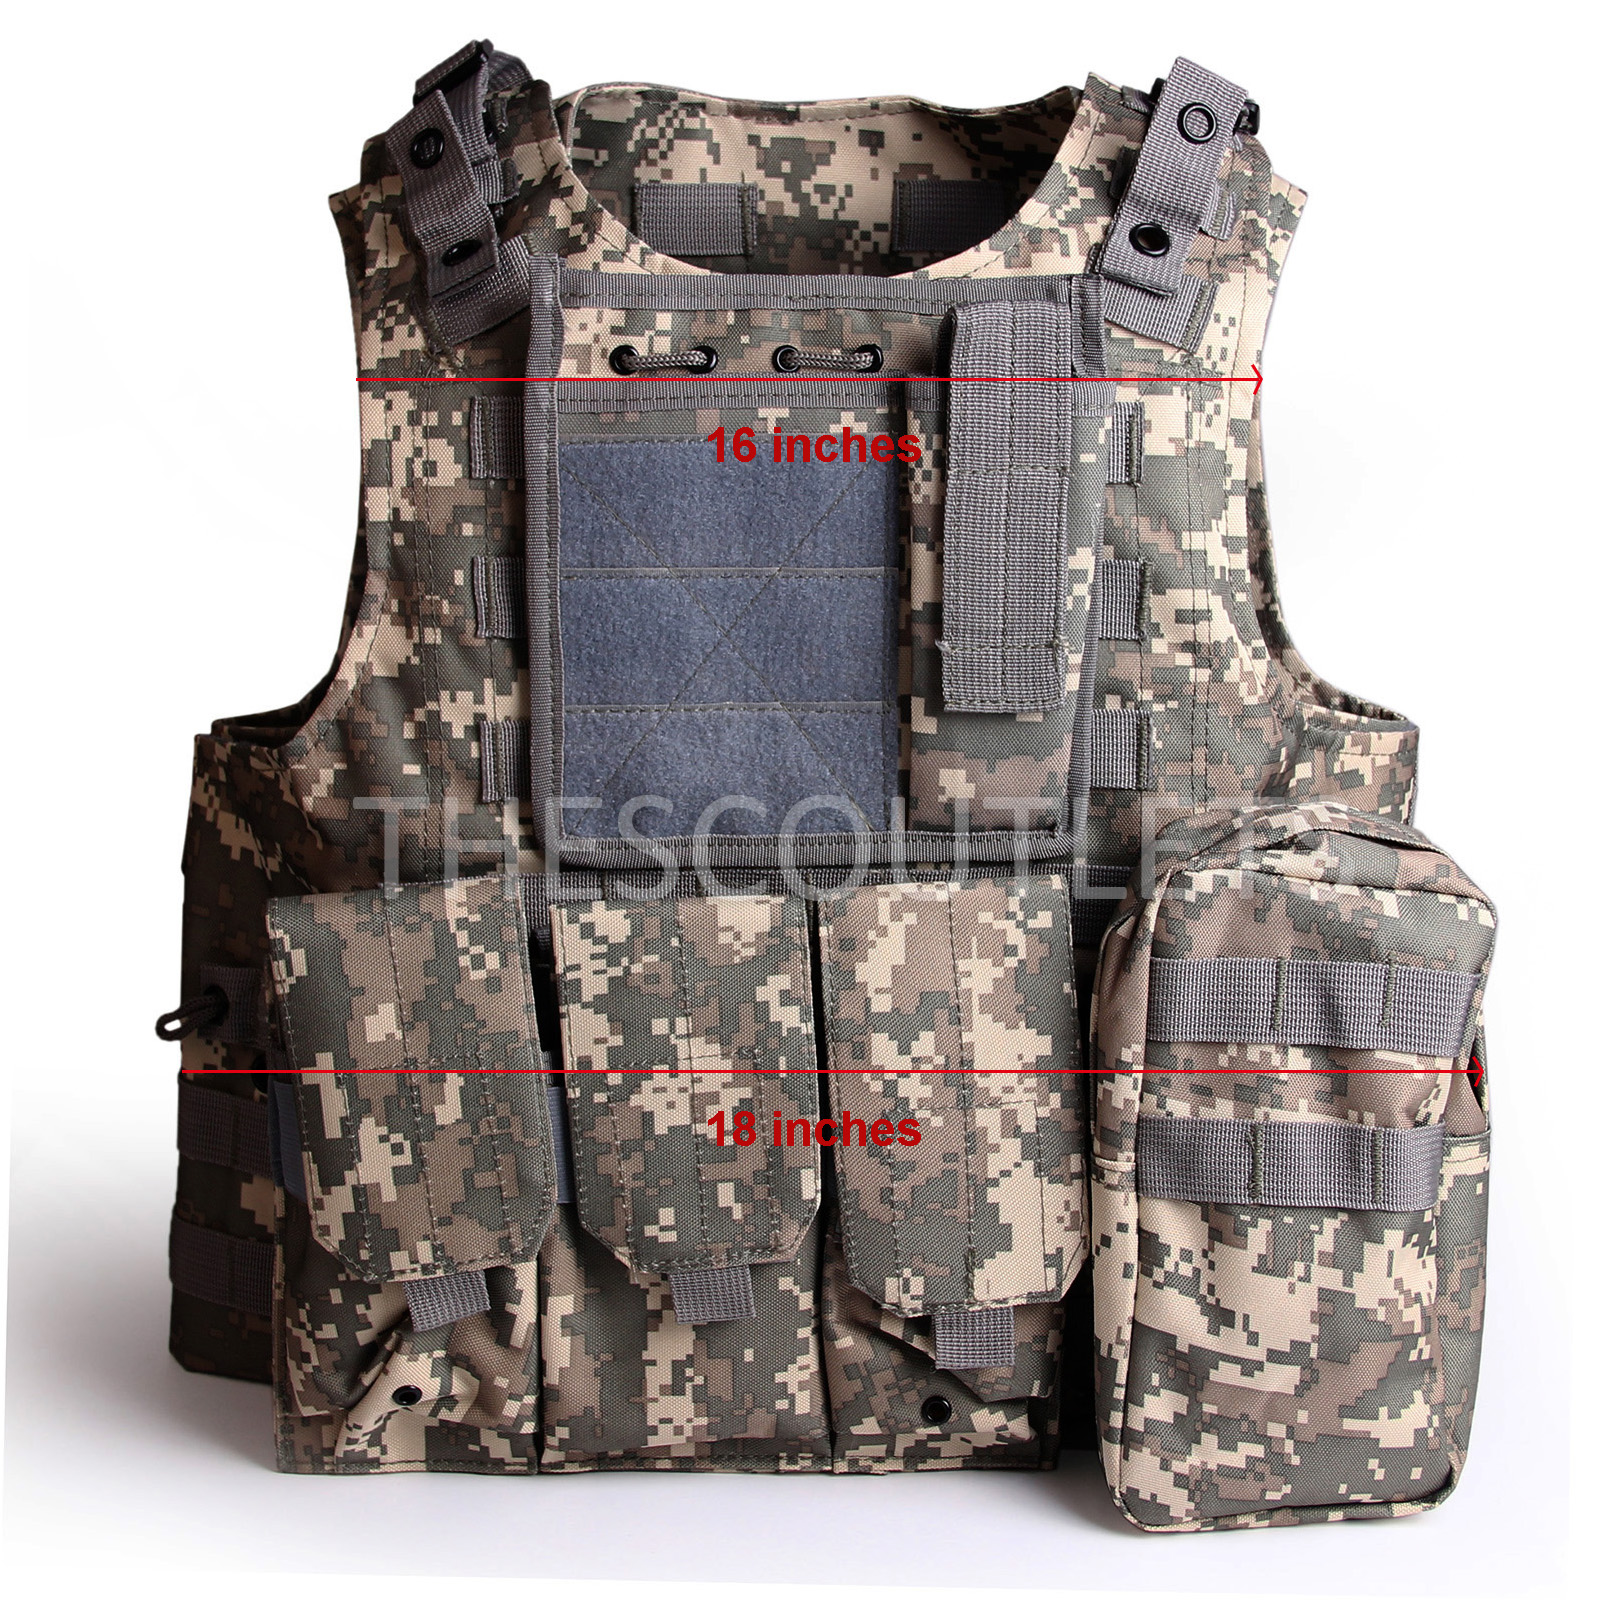 Military-Tactical-Paintball-Army-Molle-Carrier-Adjustable-Airsoft-Combat-Vest thumbnail 11